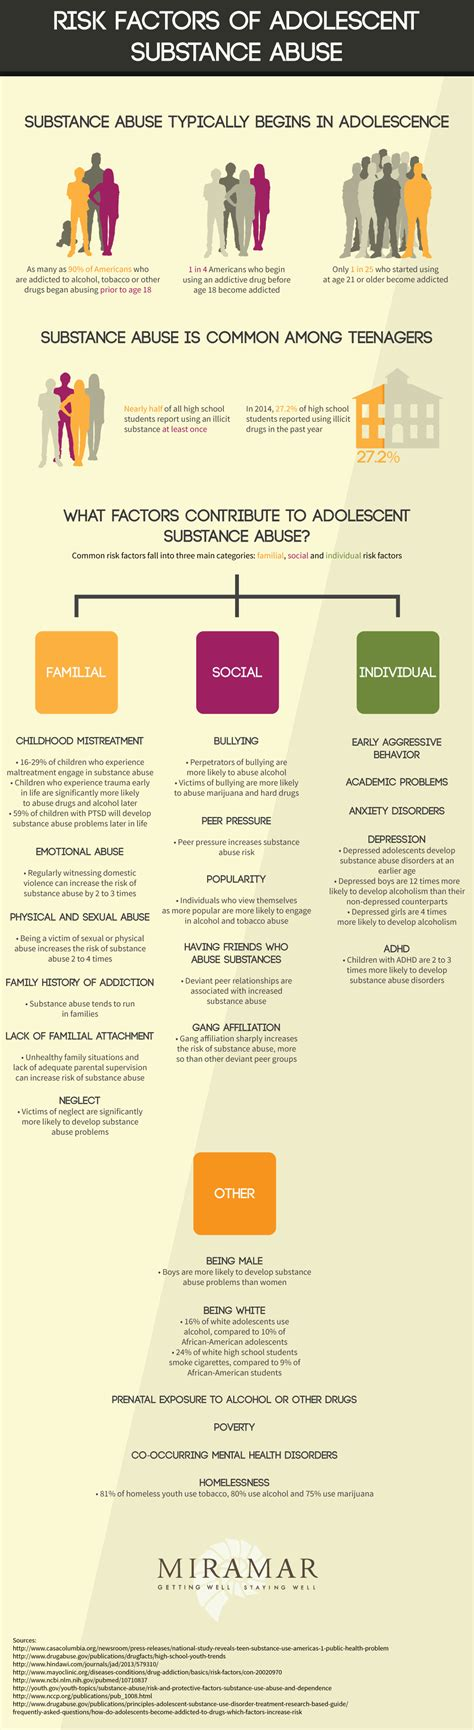 Substance Abuse Detox Centers by Risk Factors Adolescent Substance Abuse Ig